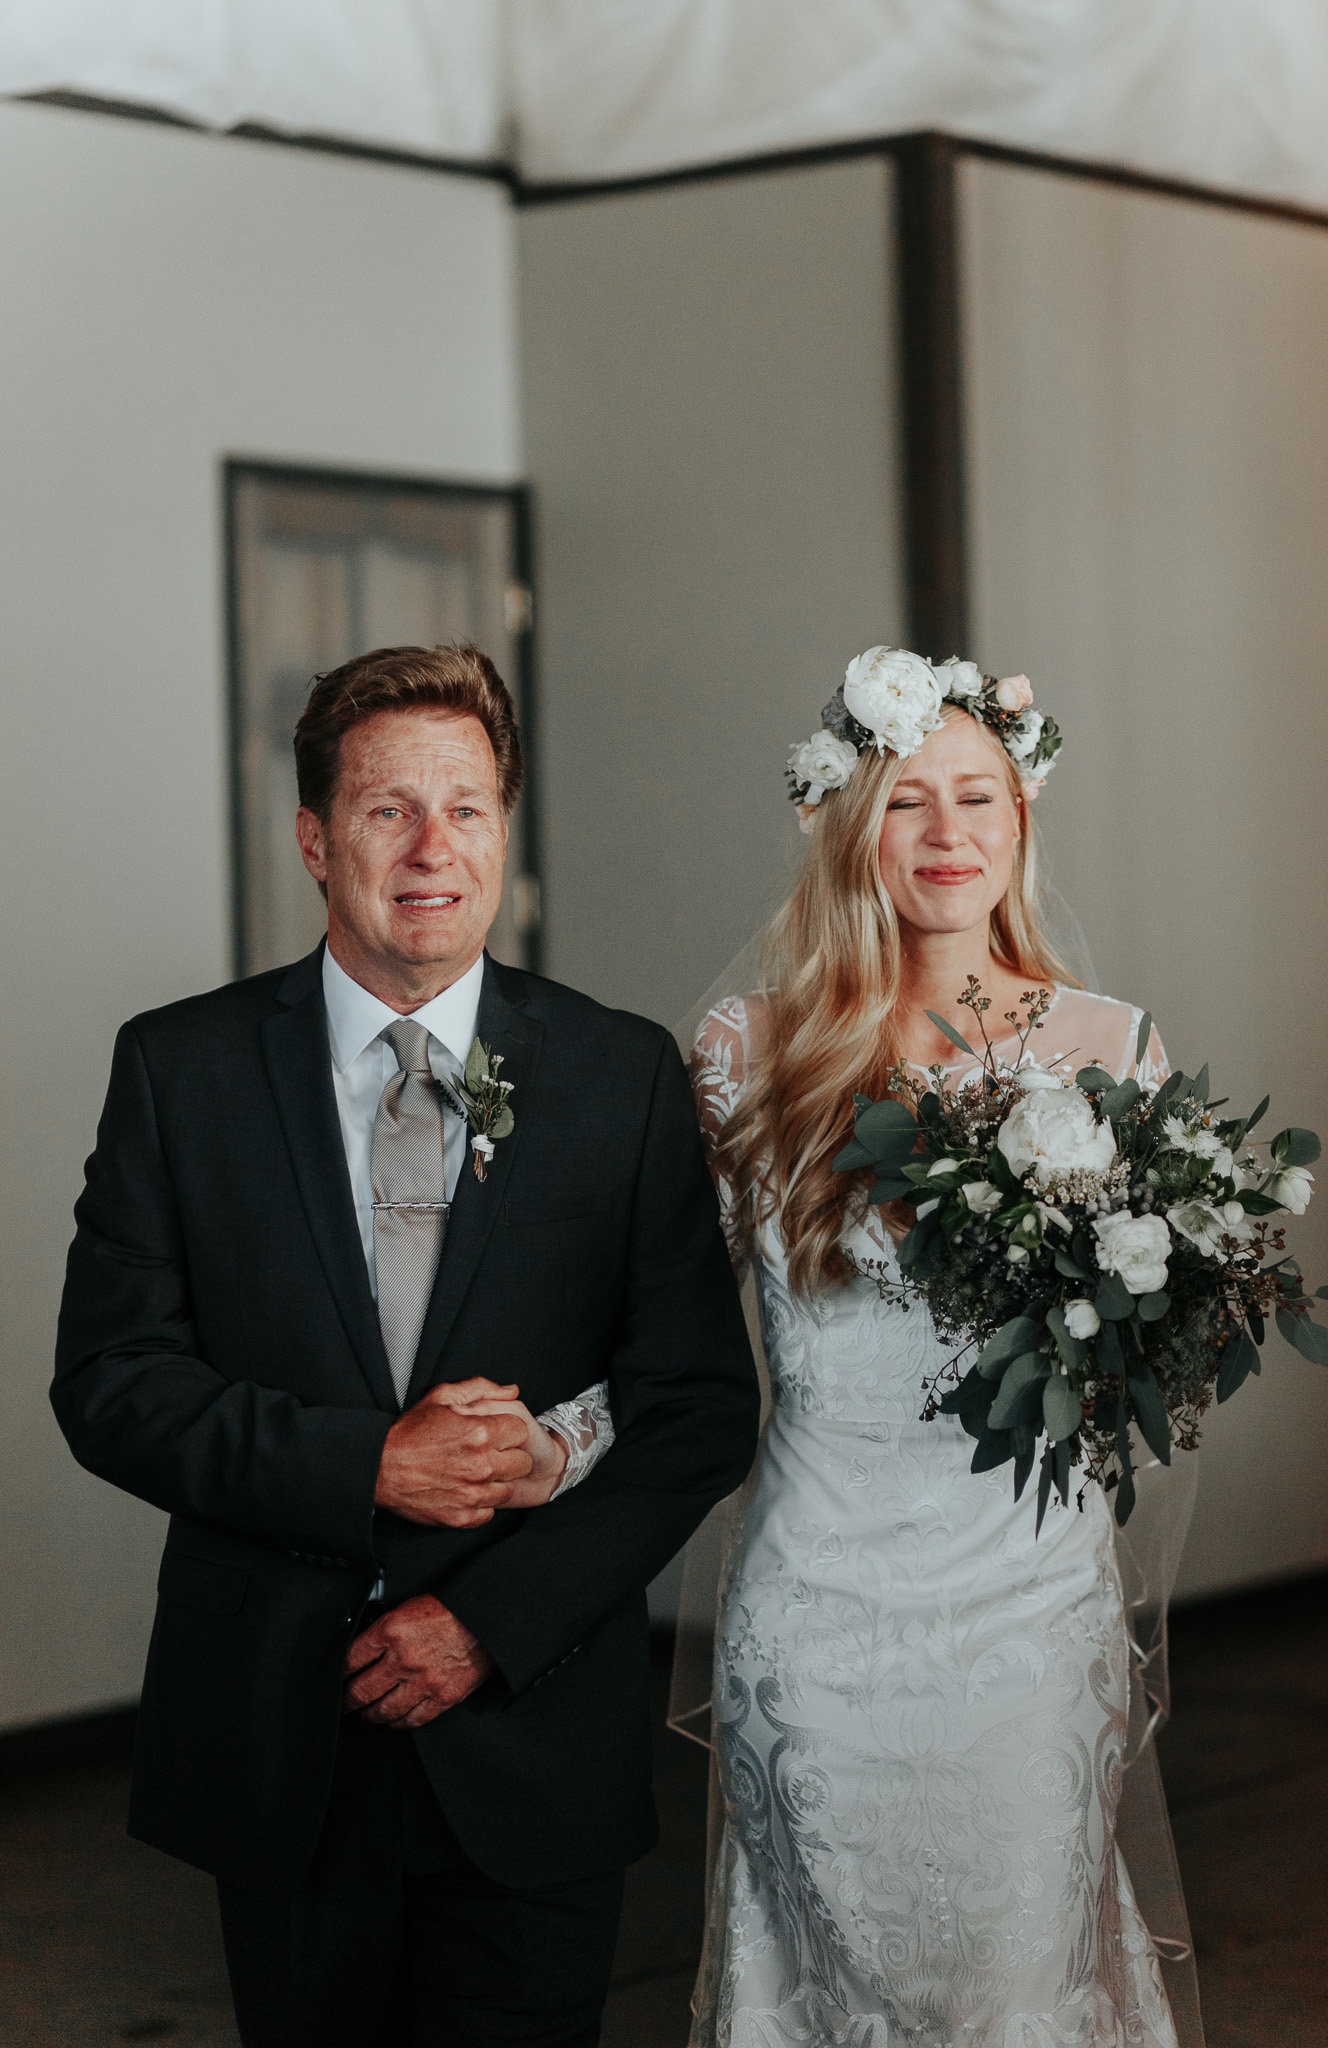 moss-denver-wedding-photographer-20